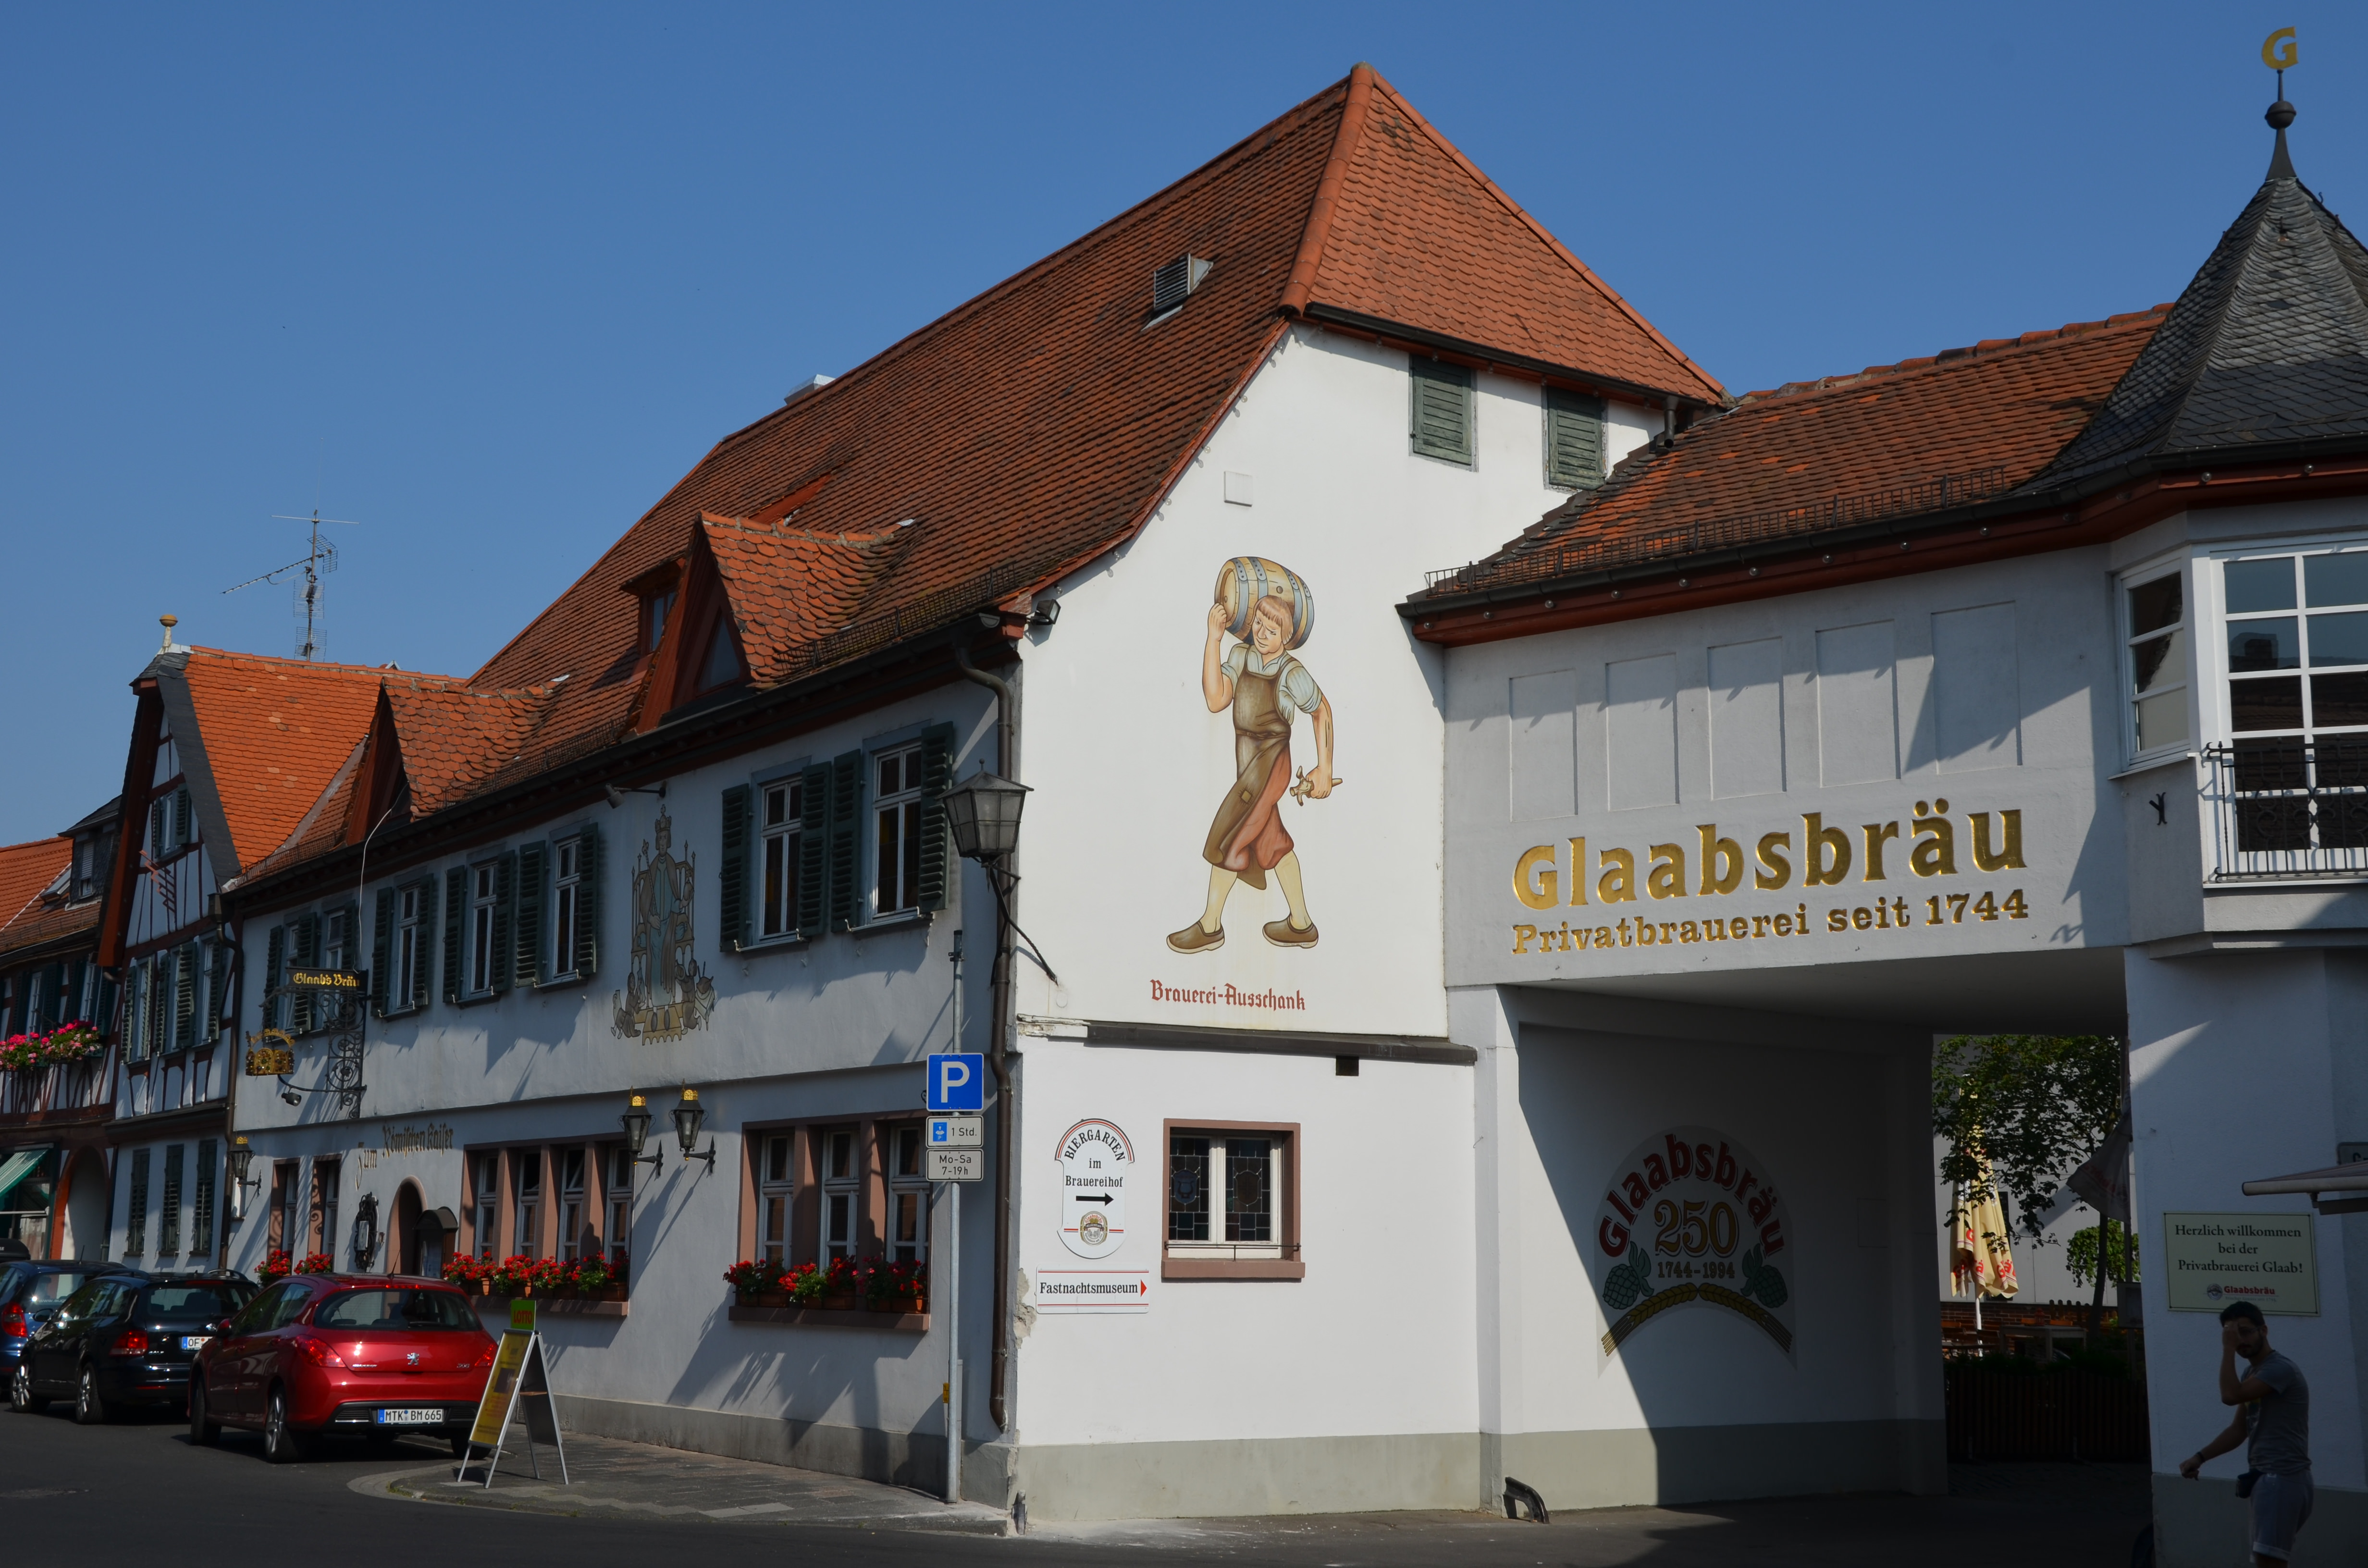 The Glaab brewery is housed in an immaculate, white, two-story building with a red-tiled roof.